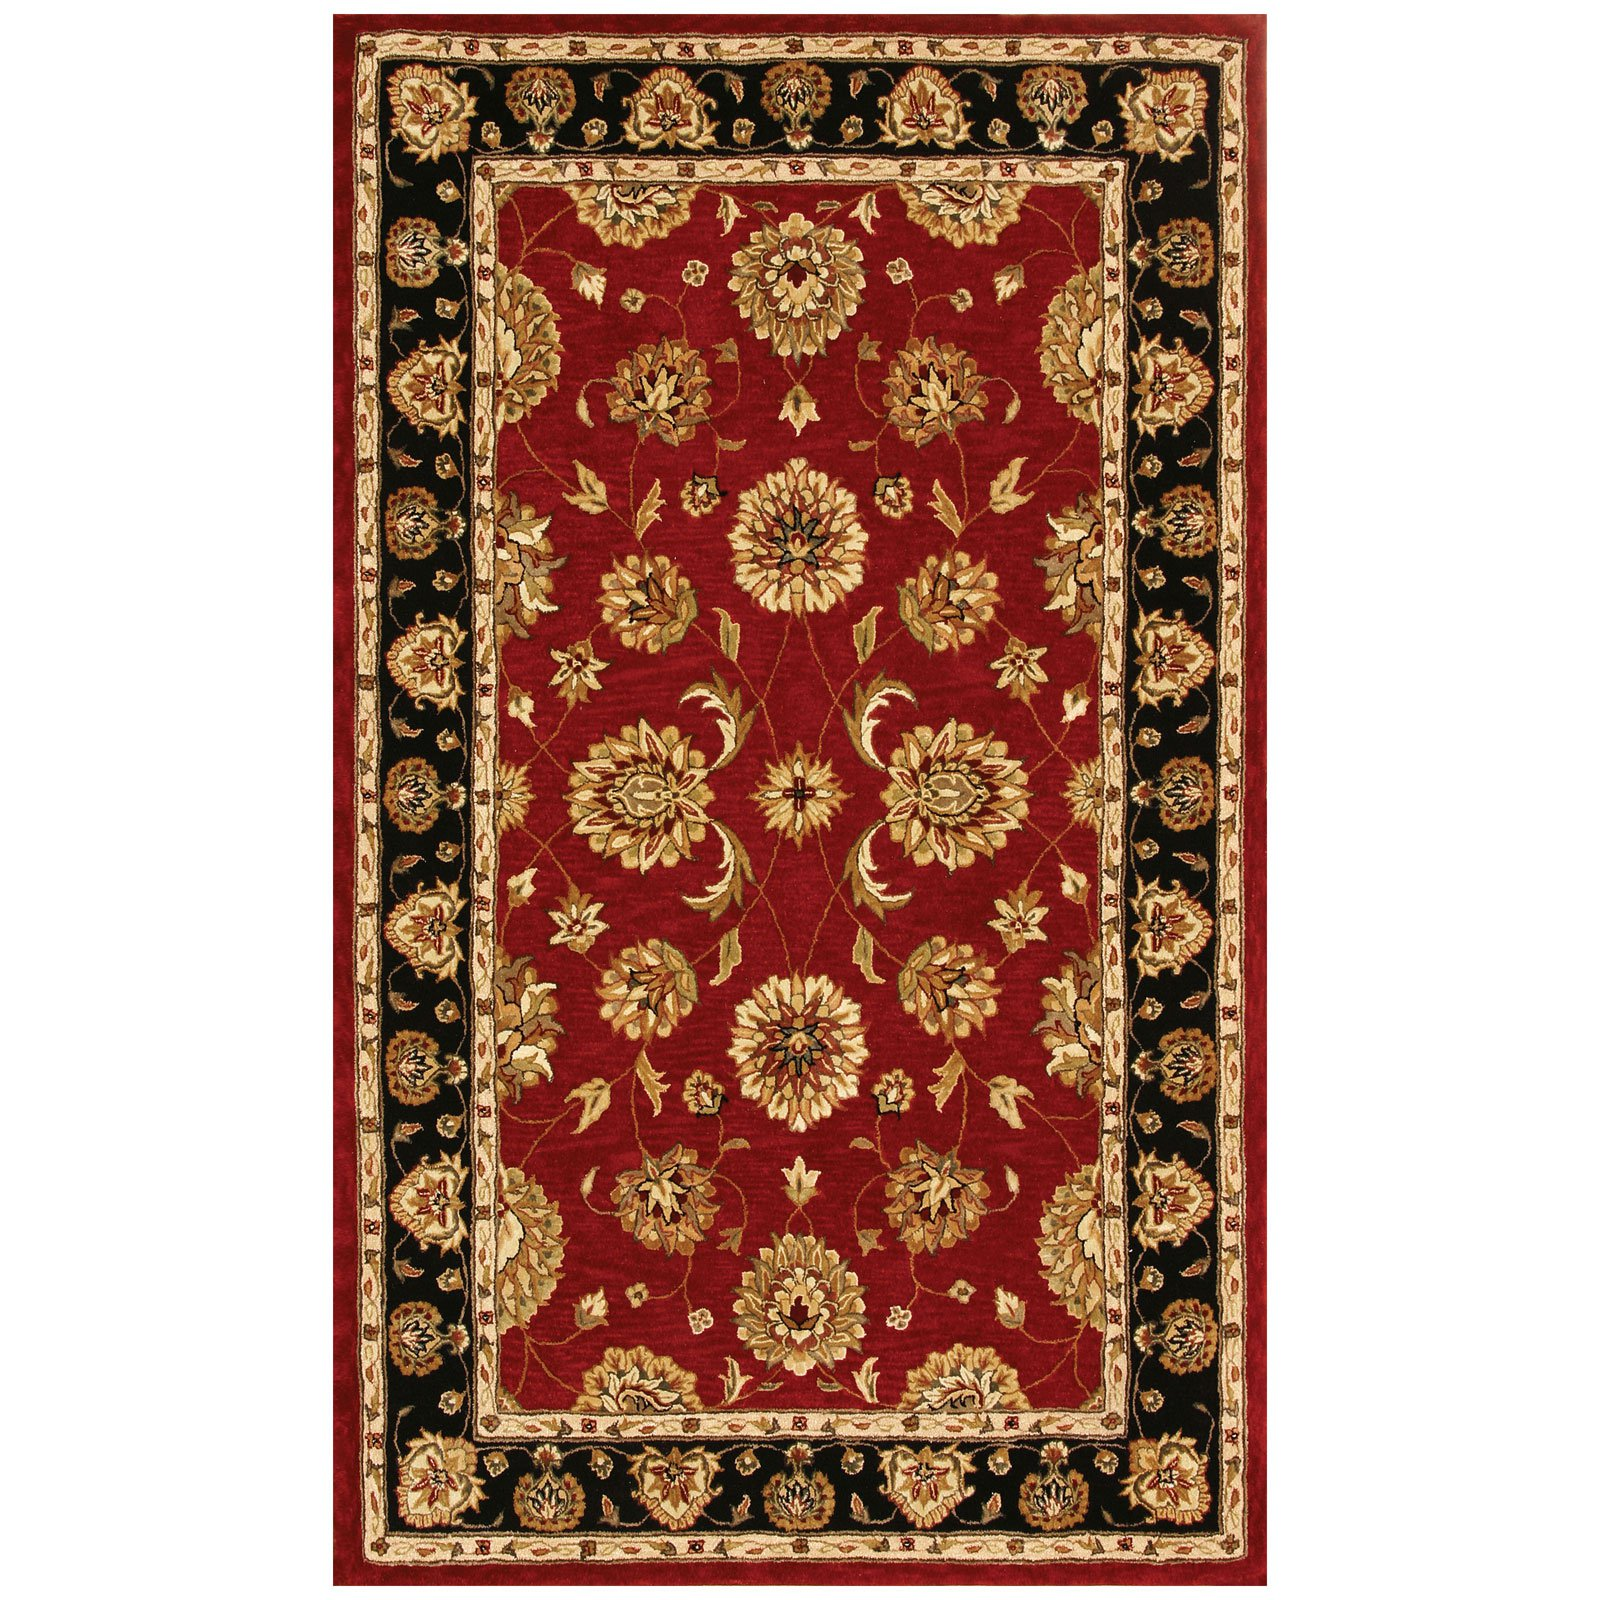 Dynamic Rugs Jewel 70230 Pom Persian Rug - Red/Black-4 x 6 ft.